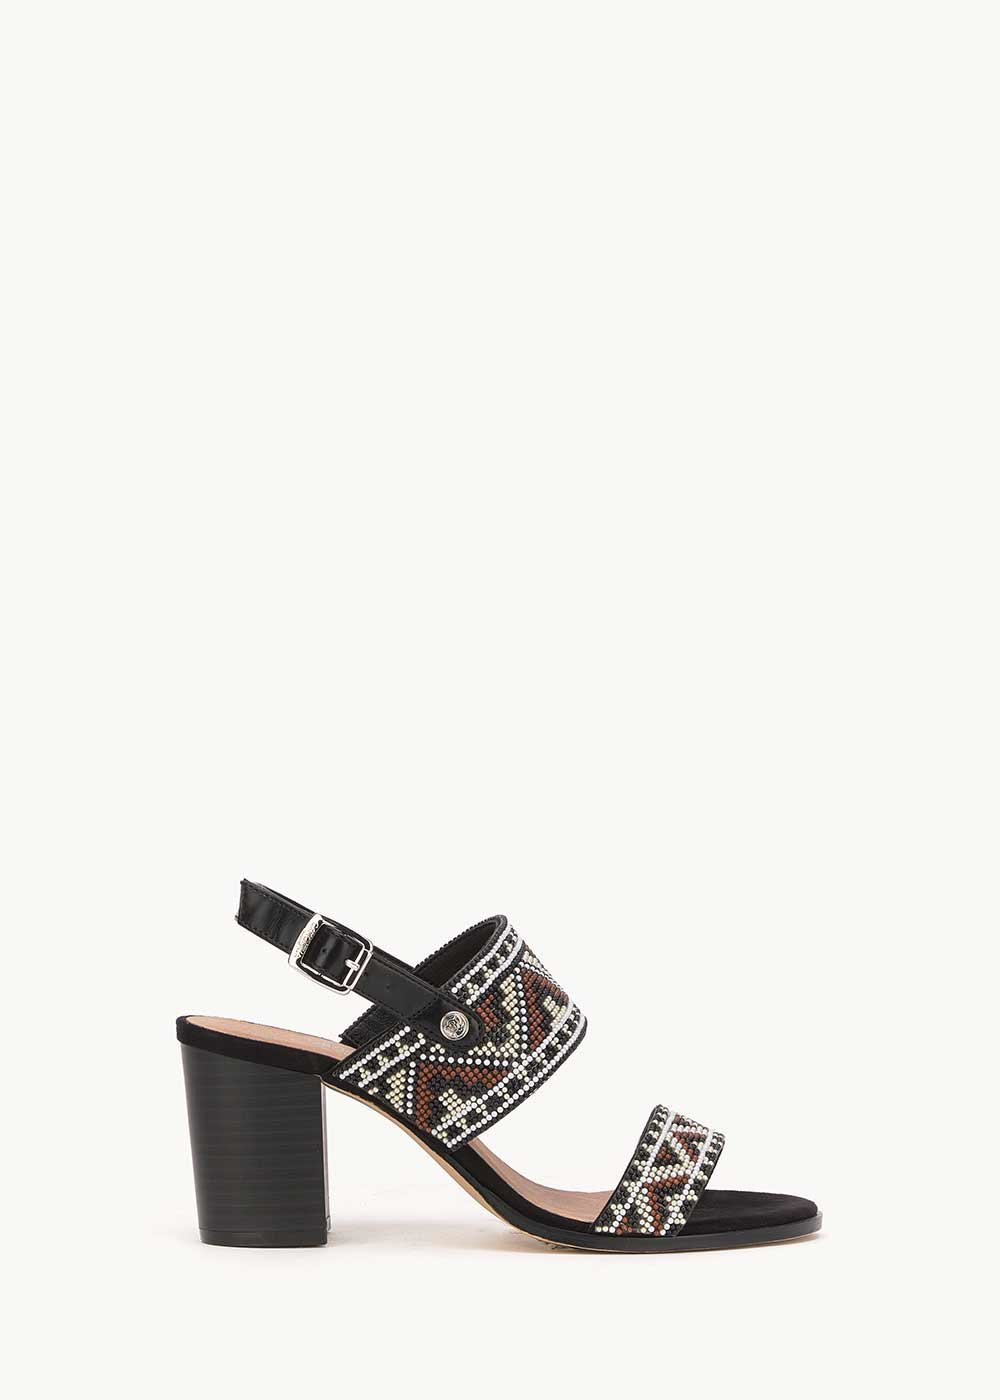 Shyl sandal with aztec motif - Black Fantasia - Woman